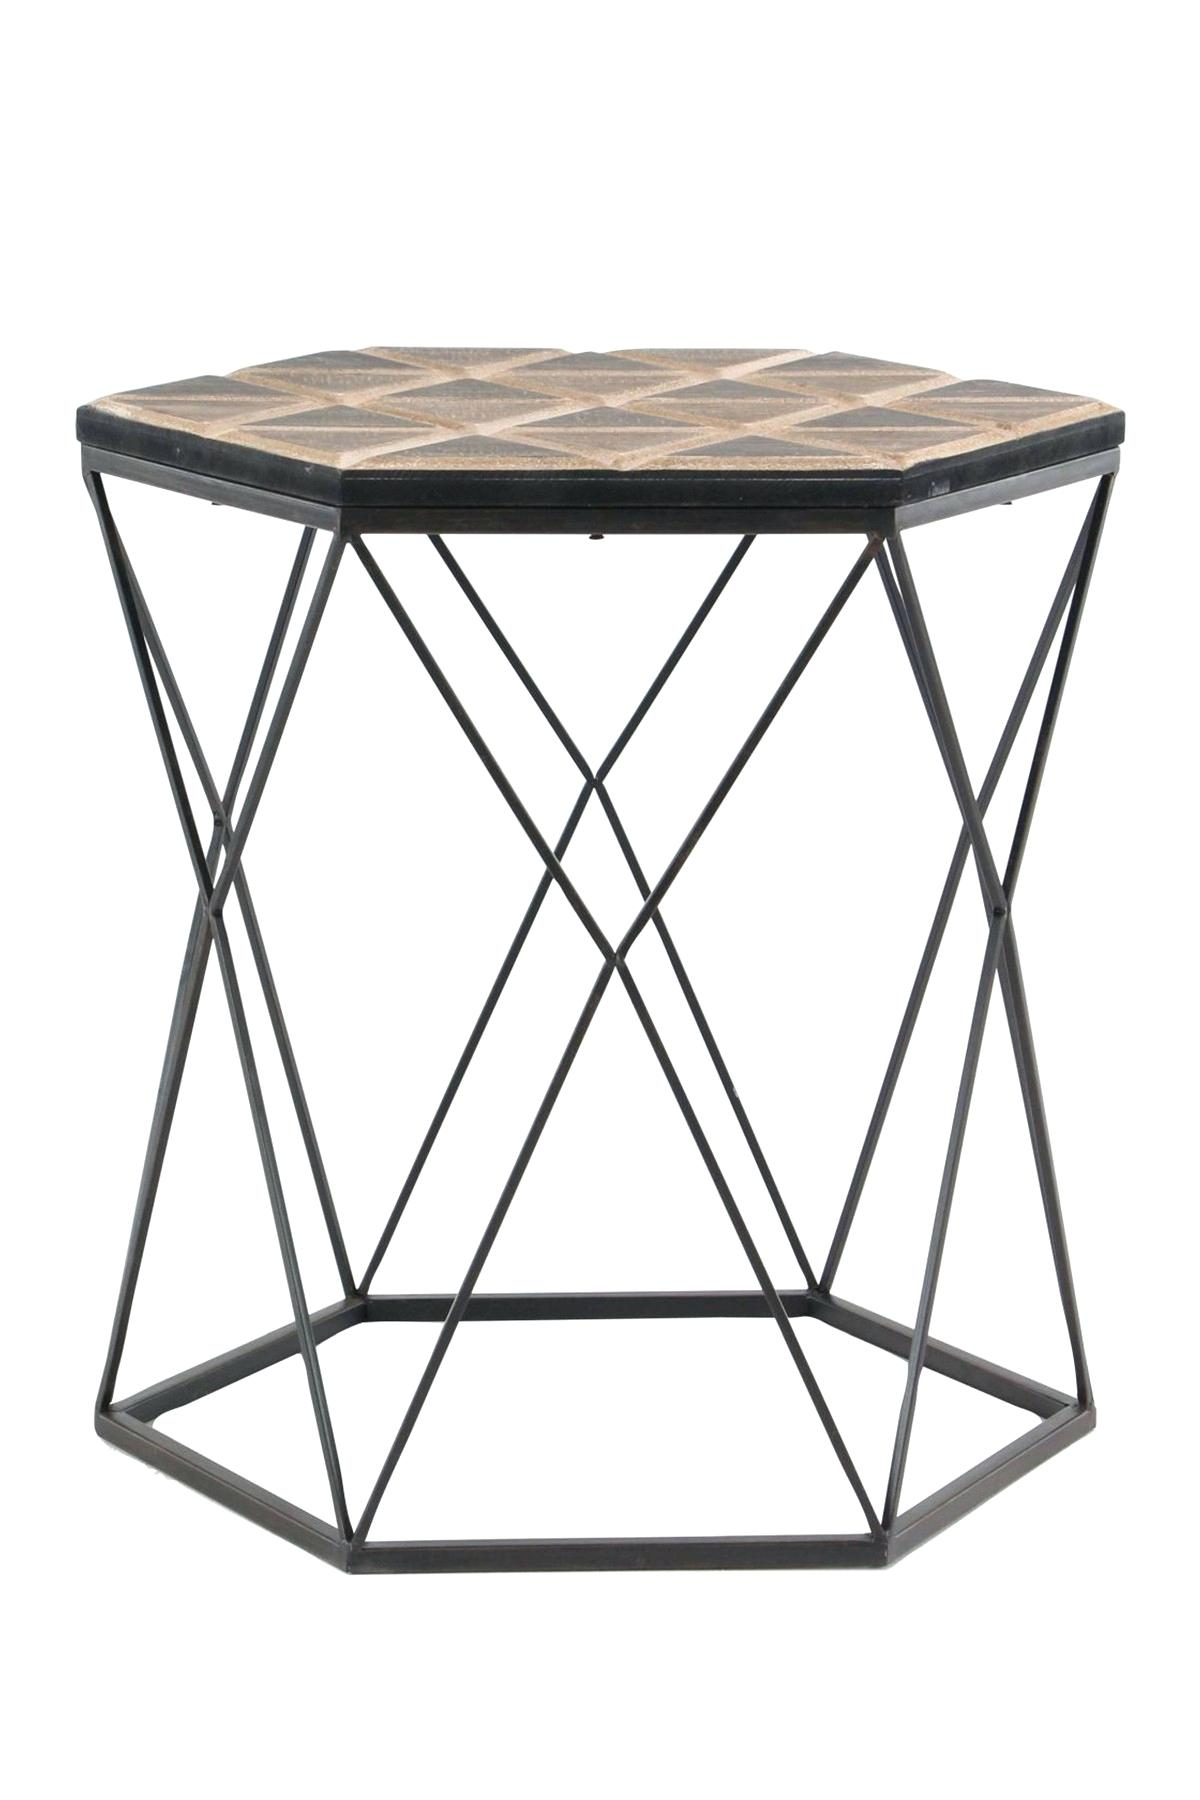 wood accent table mango round brown gray metal faux target avani drum uttermost wooden small plastic outdoor side dark coffee mission style dining with storage baskets plant